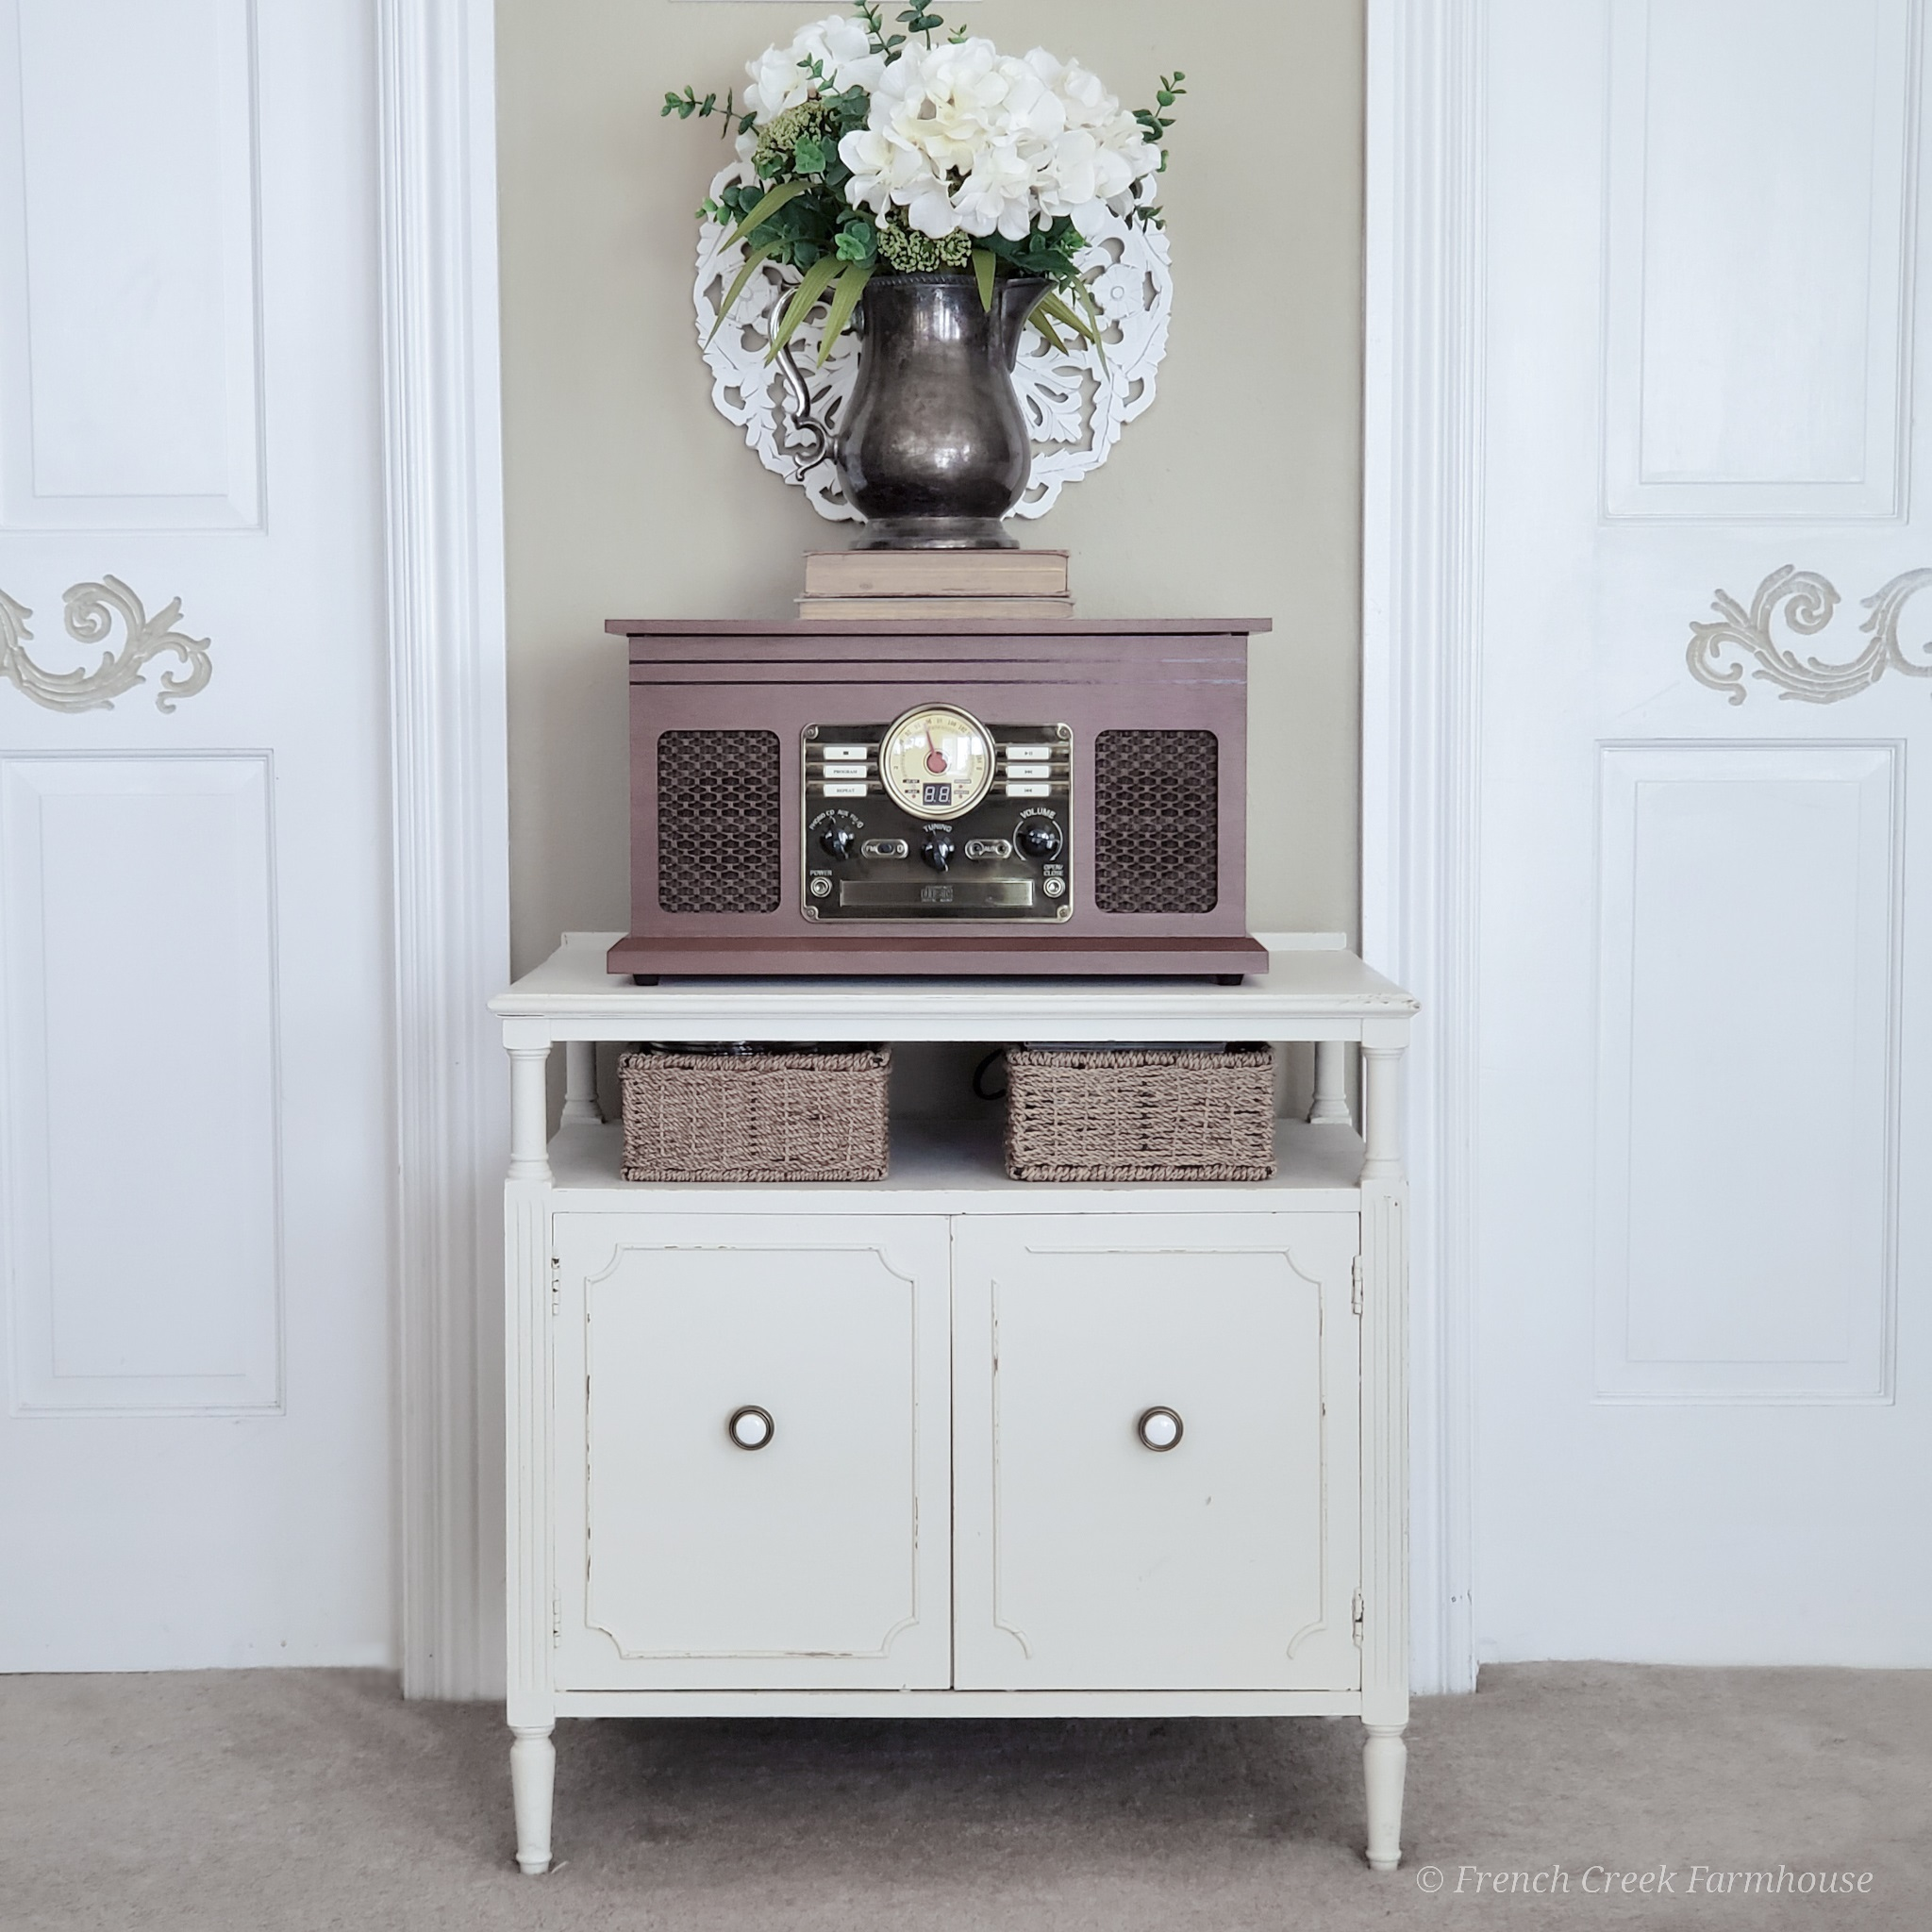 Vintage record cabinet paired with vintage-look stereo system